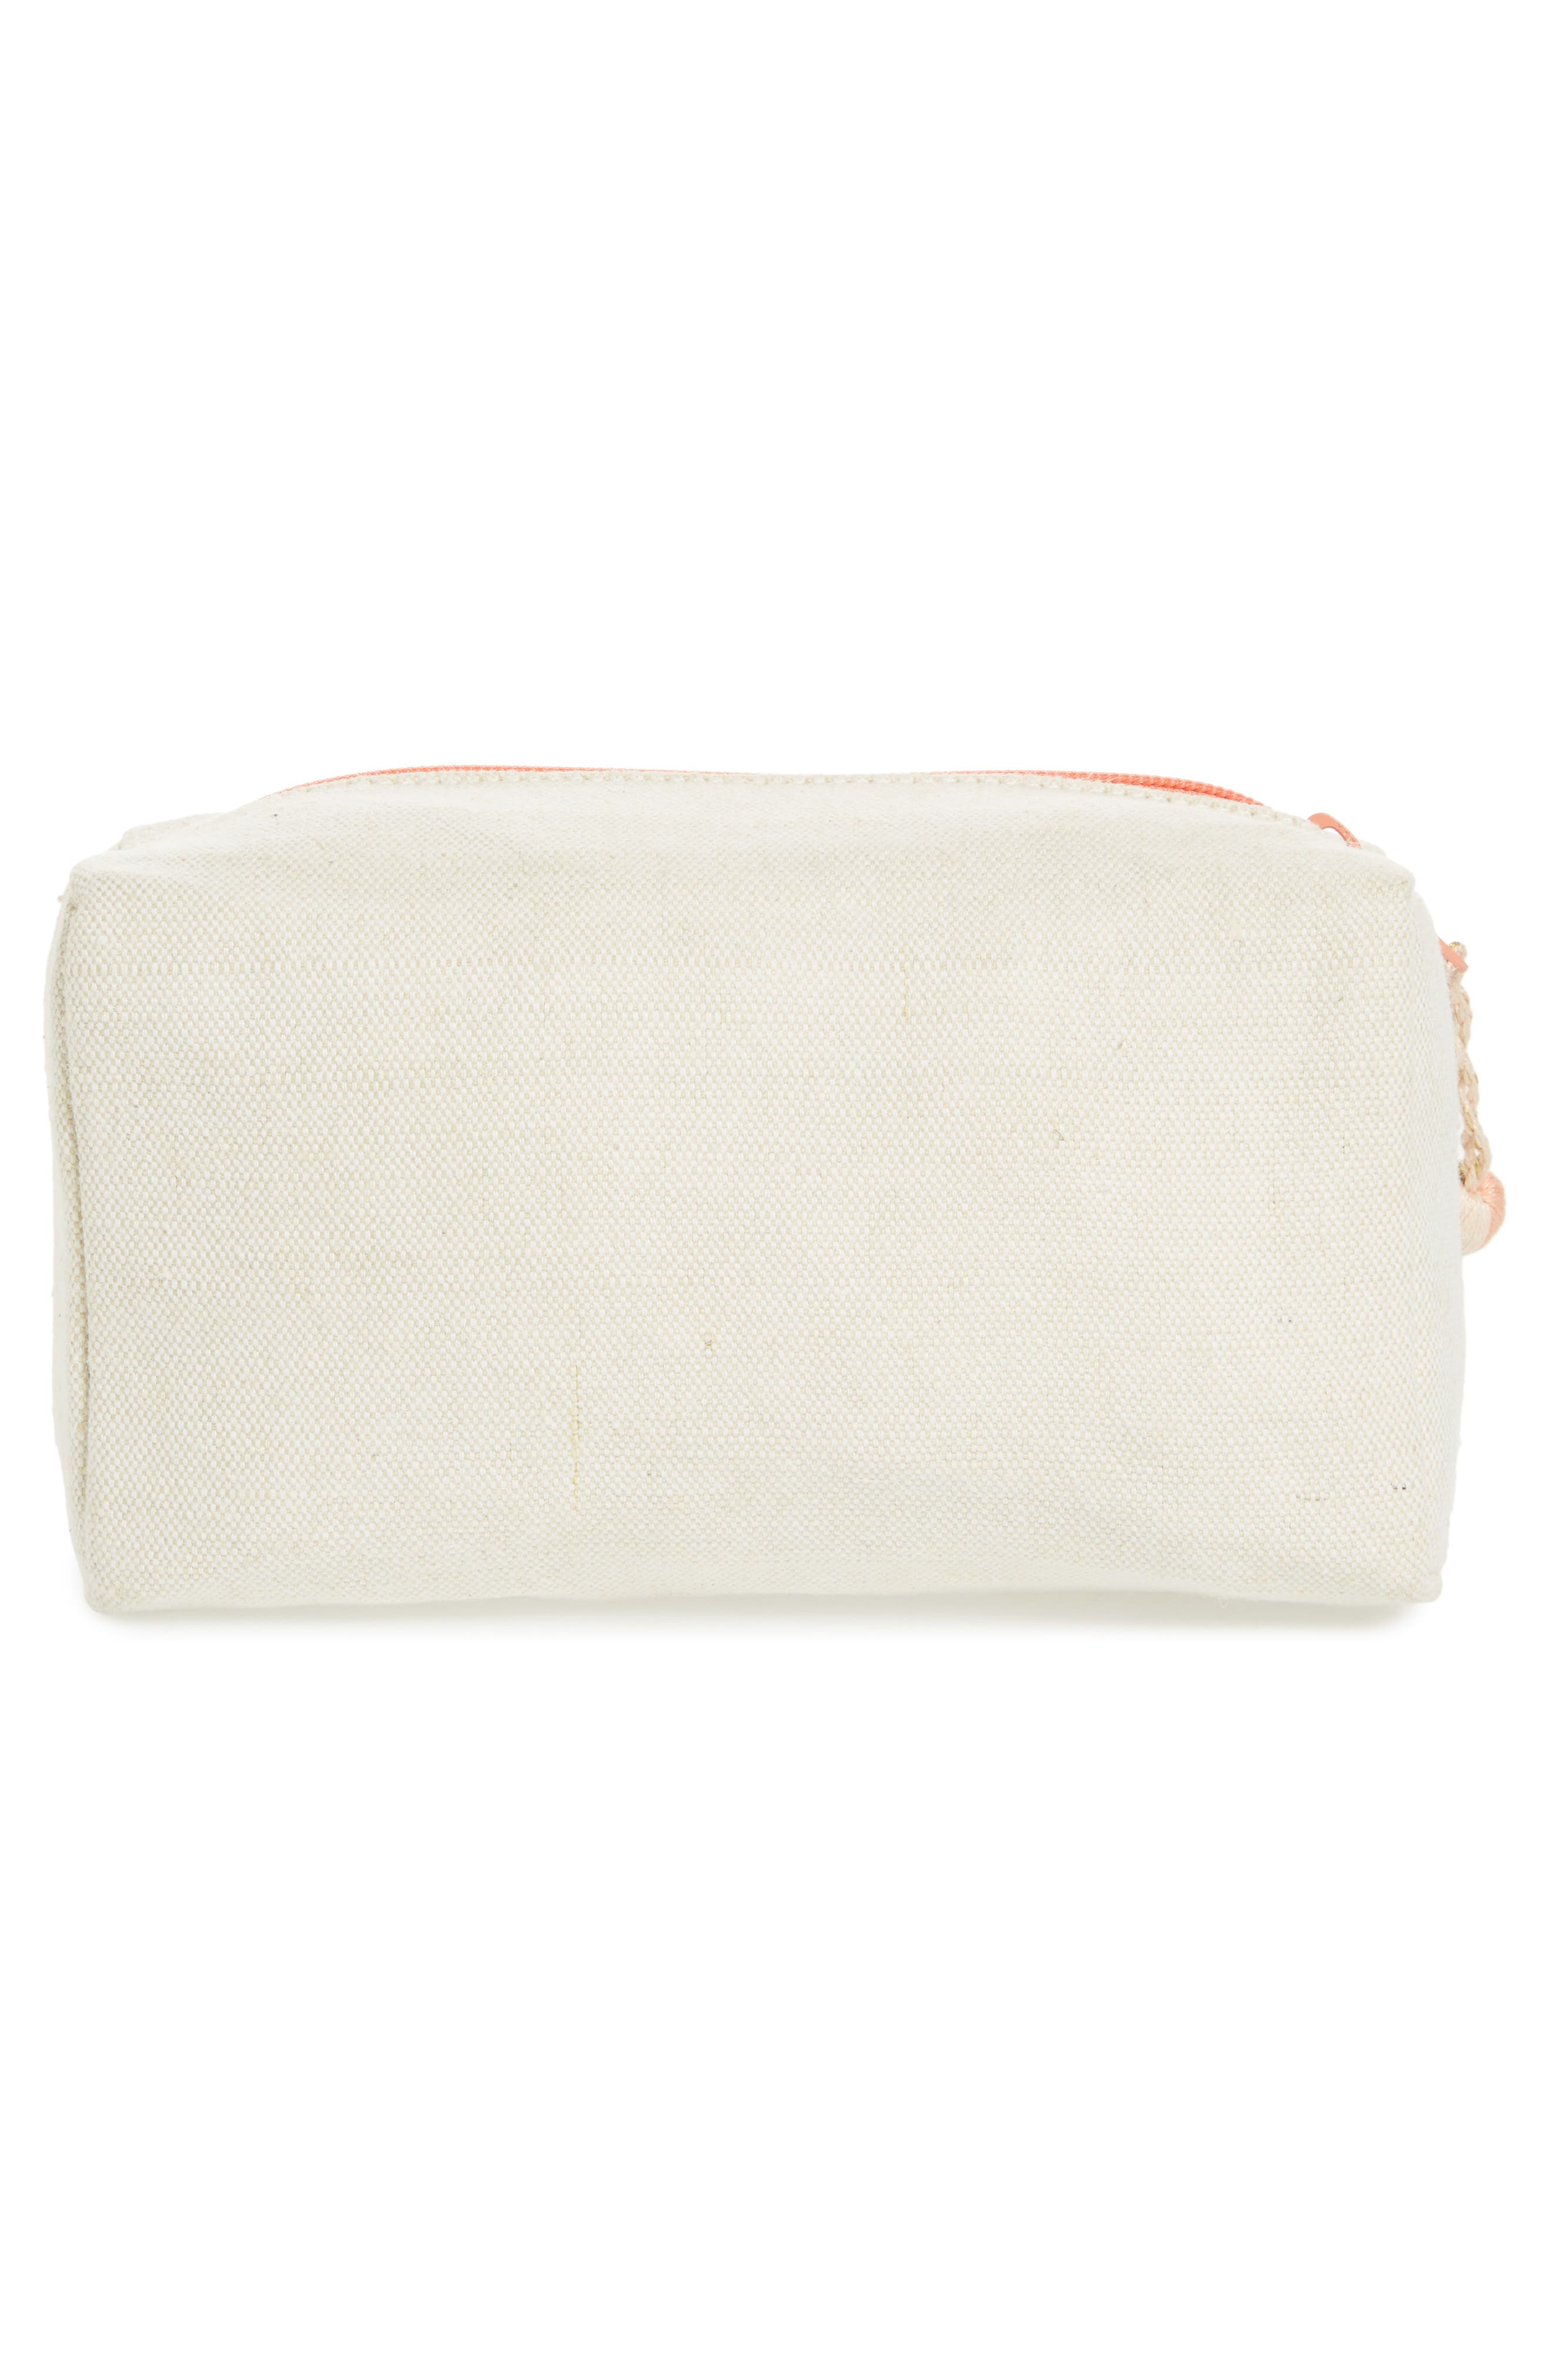 Bee Canvas Cosmetic Pouch,                             Alternate thumbnail 2, color,                             710